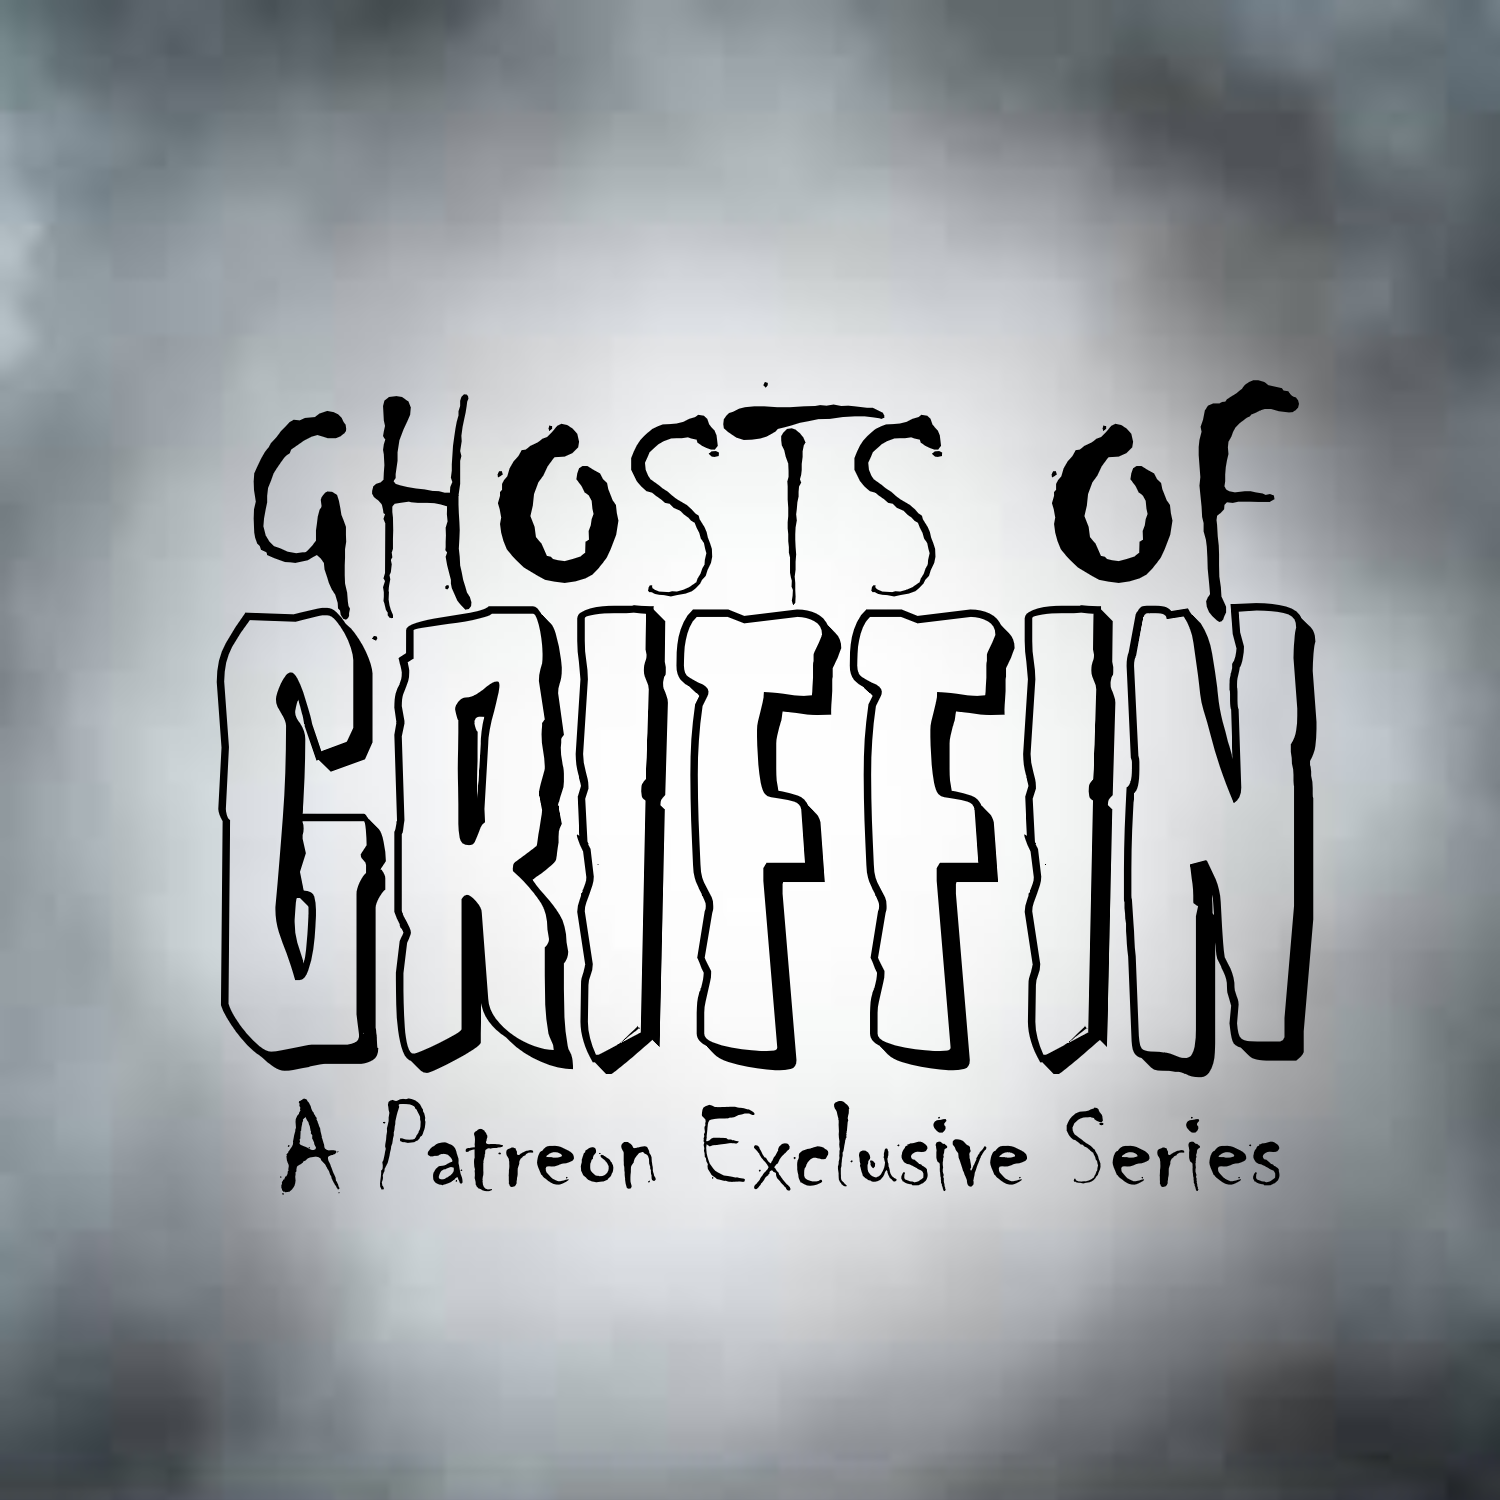 Ghosts of Griffin (Trailer)